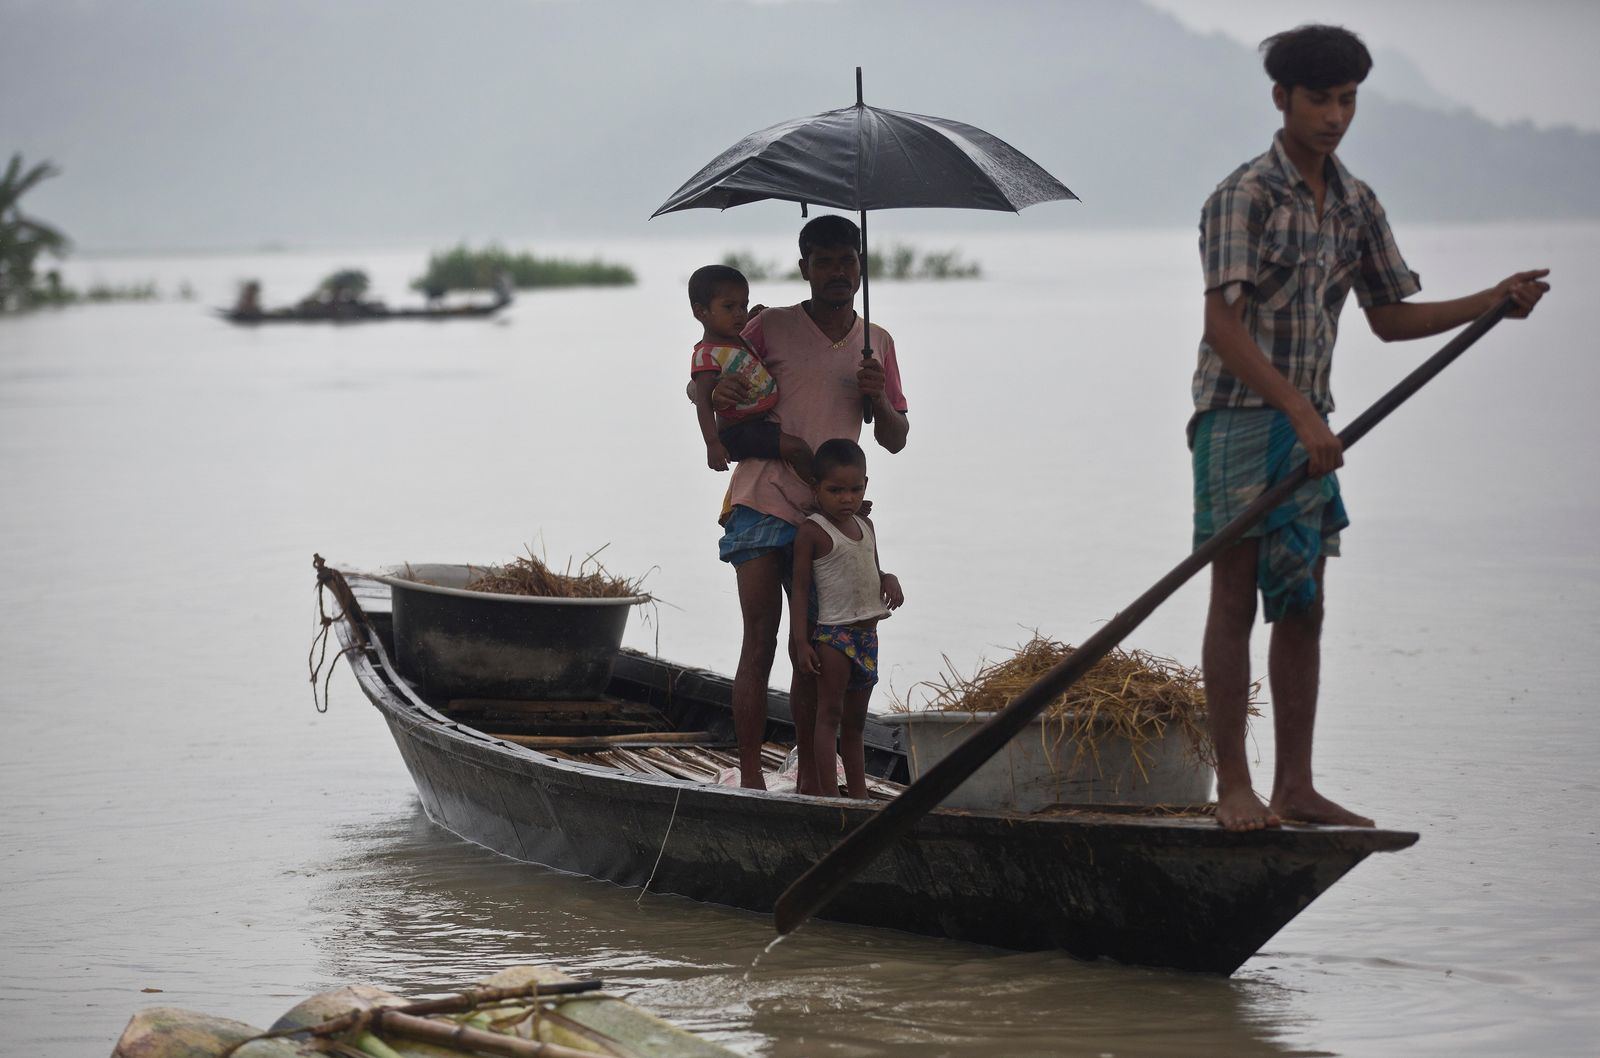 Flood affected villagers travel on a boat in Katahguri village along the river Brahmaputra, east of Gauhati, India, Sunday, July 14, 2019. Officials in northeastern India said more than a dozen people were killed and over a million affected by flooding. Rain-triggered floods, mudslides and lightning have left a trail of destruction in other parts of South Asia. (AP Photo/Anupam Nath)